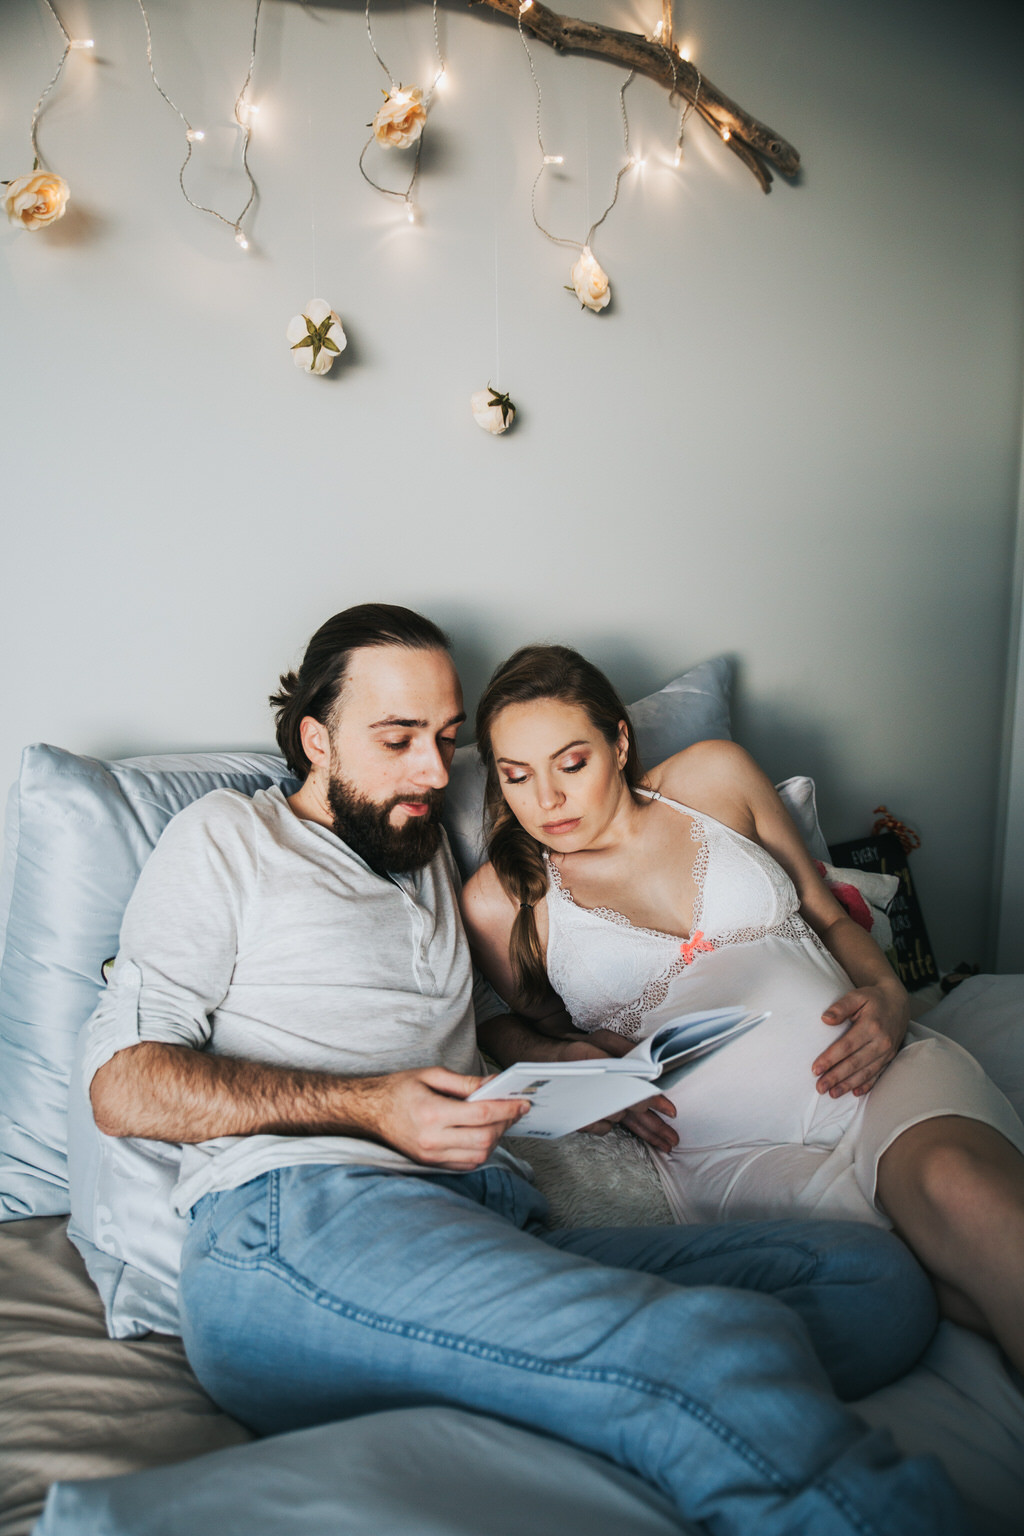 Husband With Pregnant Wife in bed reading book